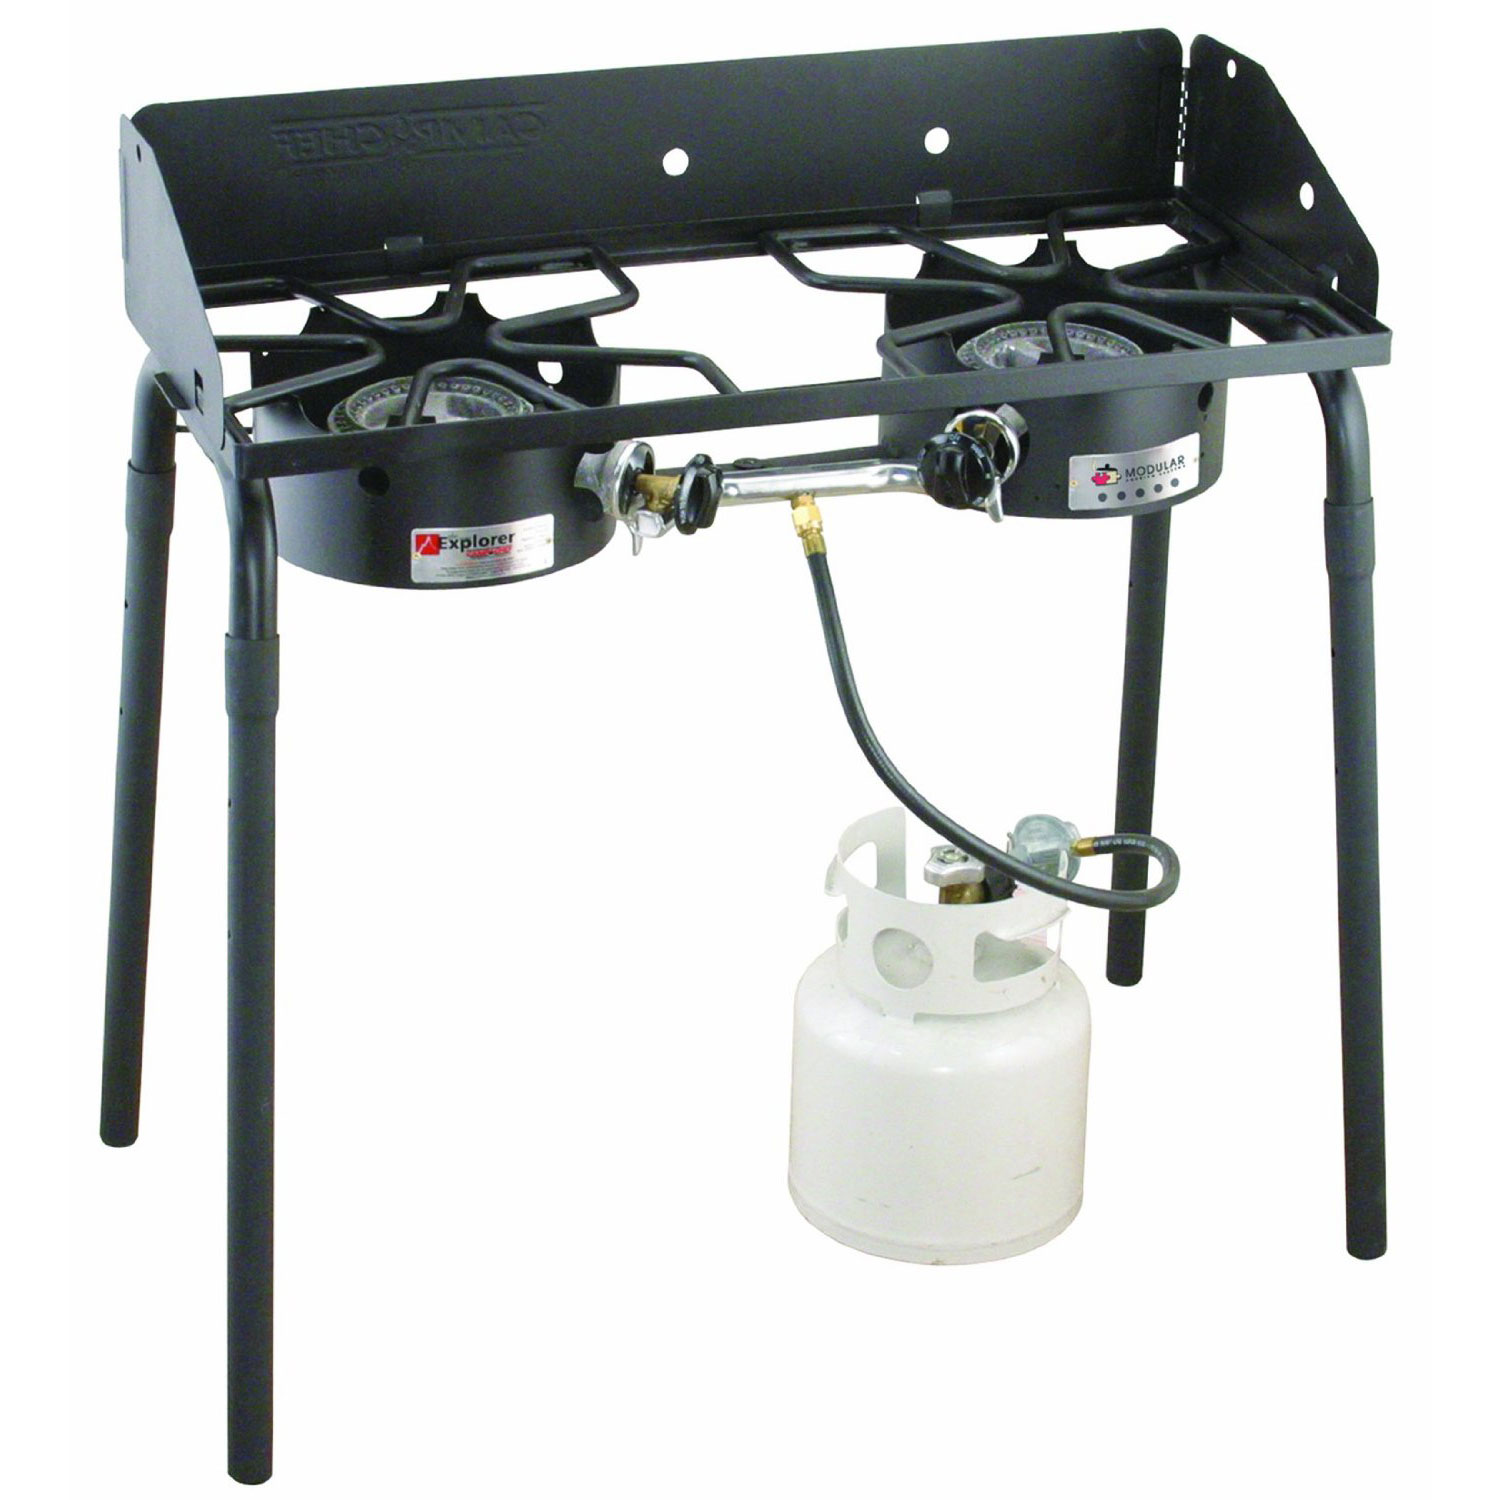 Camp Chef Explorer 2-Burner Portable Camping Stove